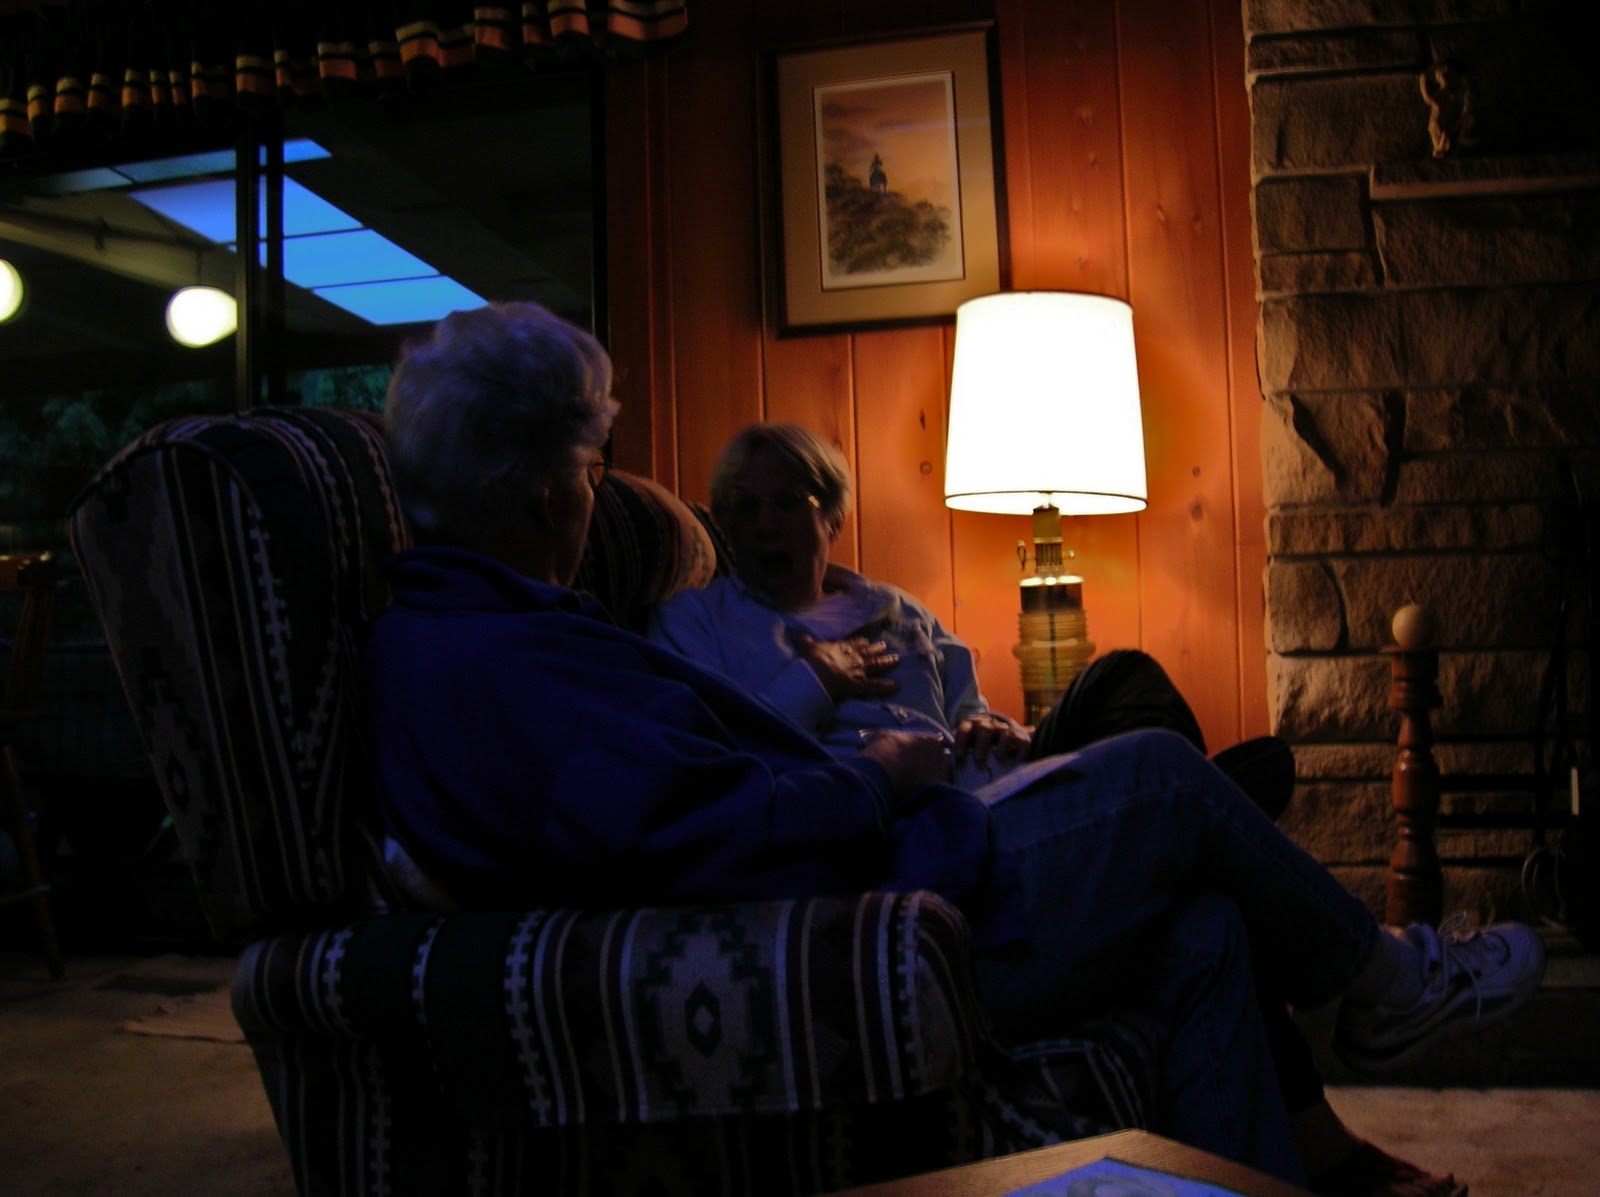 I enjoyed hearing the quiet evening drone of adult conversations and stories ...